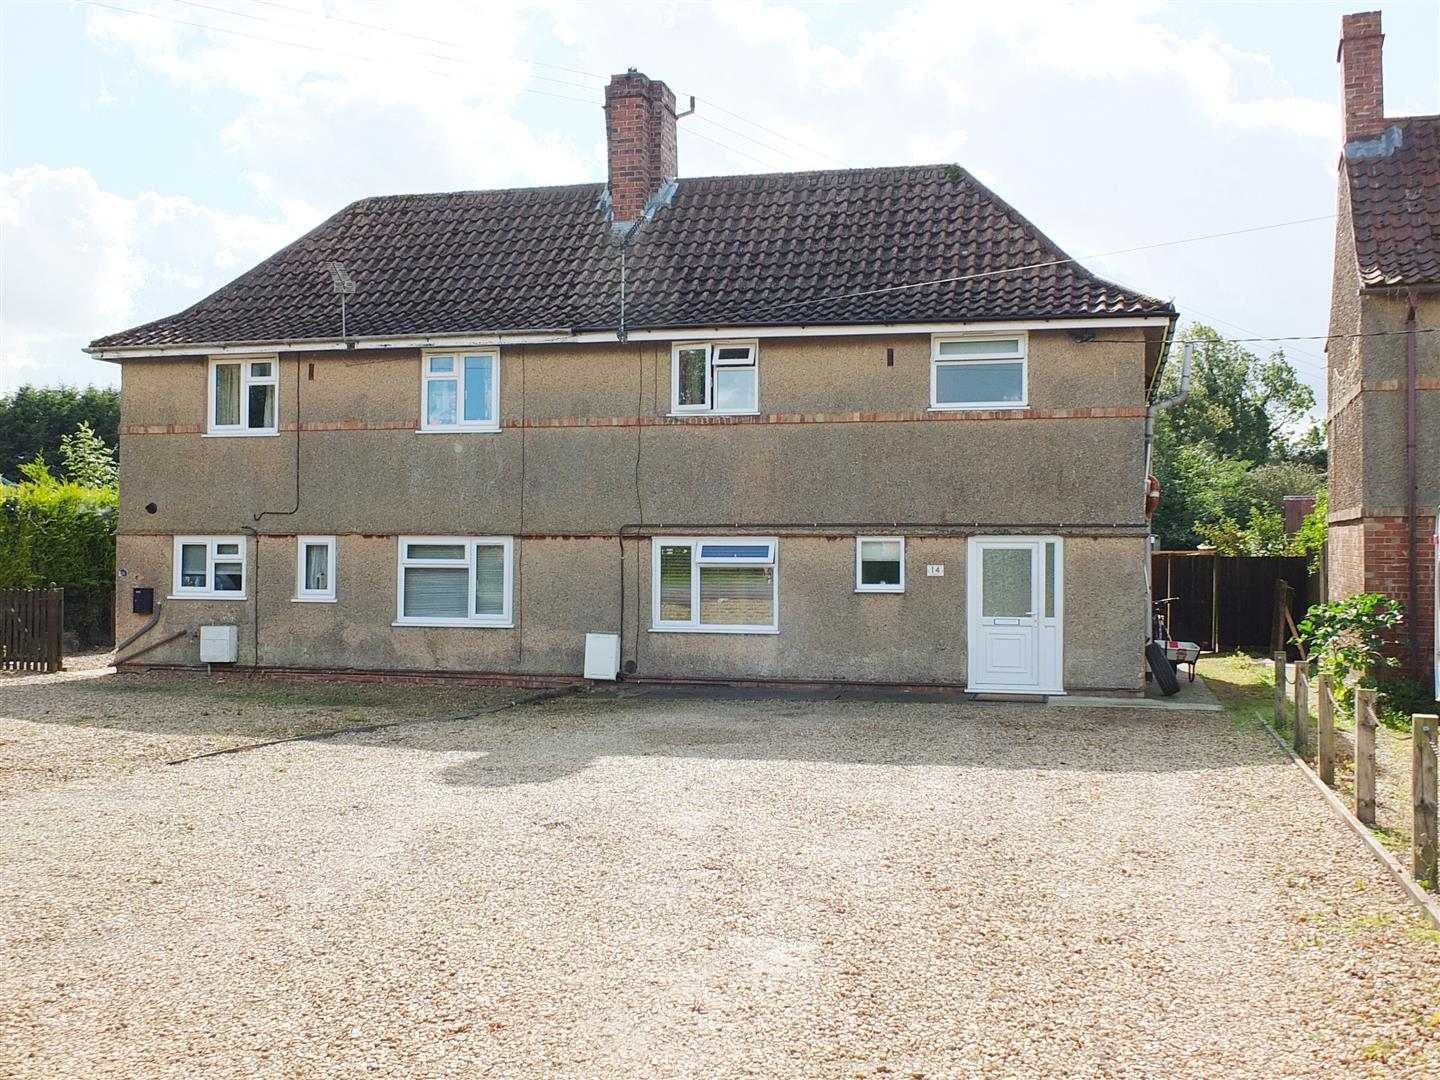 3 bed semi-detached house for sale in Long Sutton Spalding, PE12 9EF, PE12